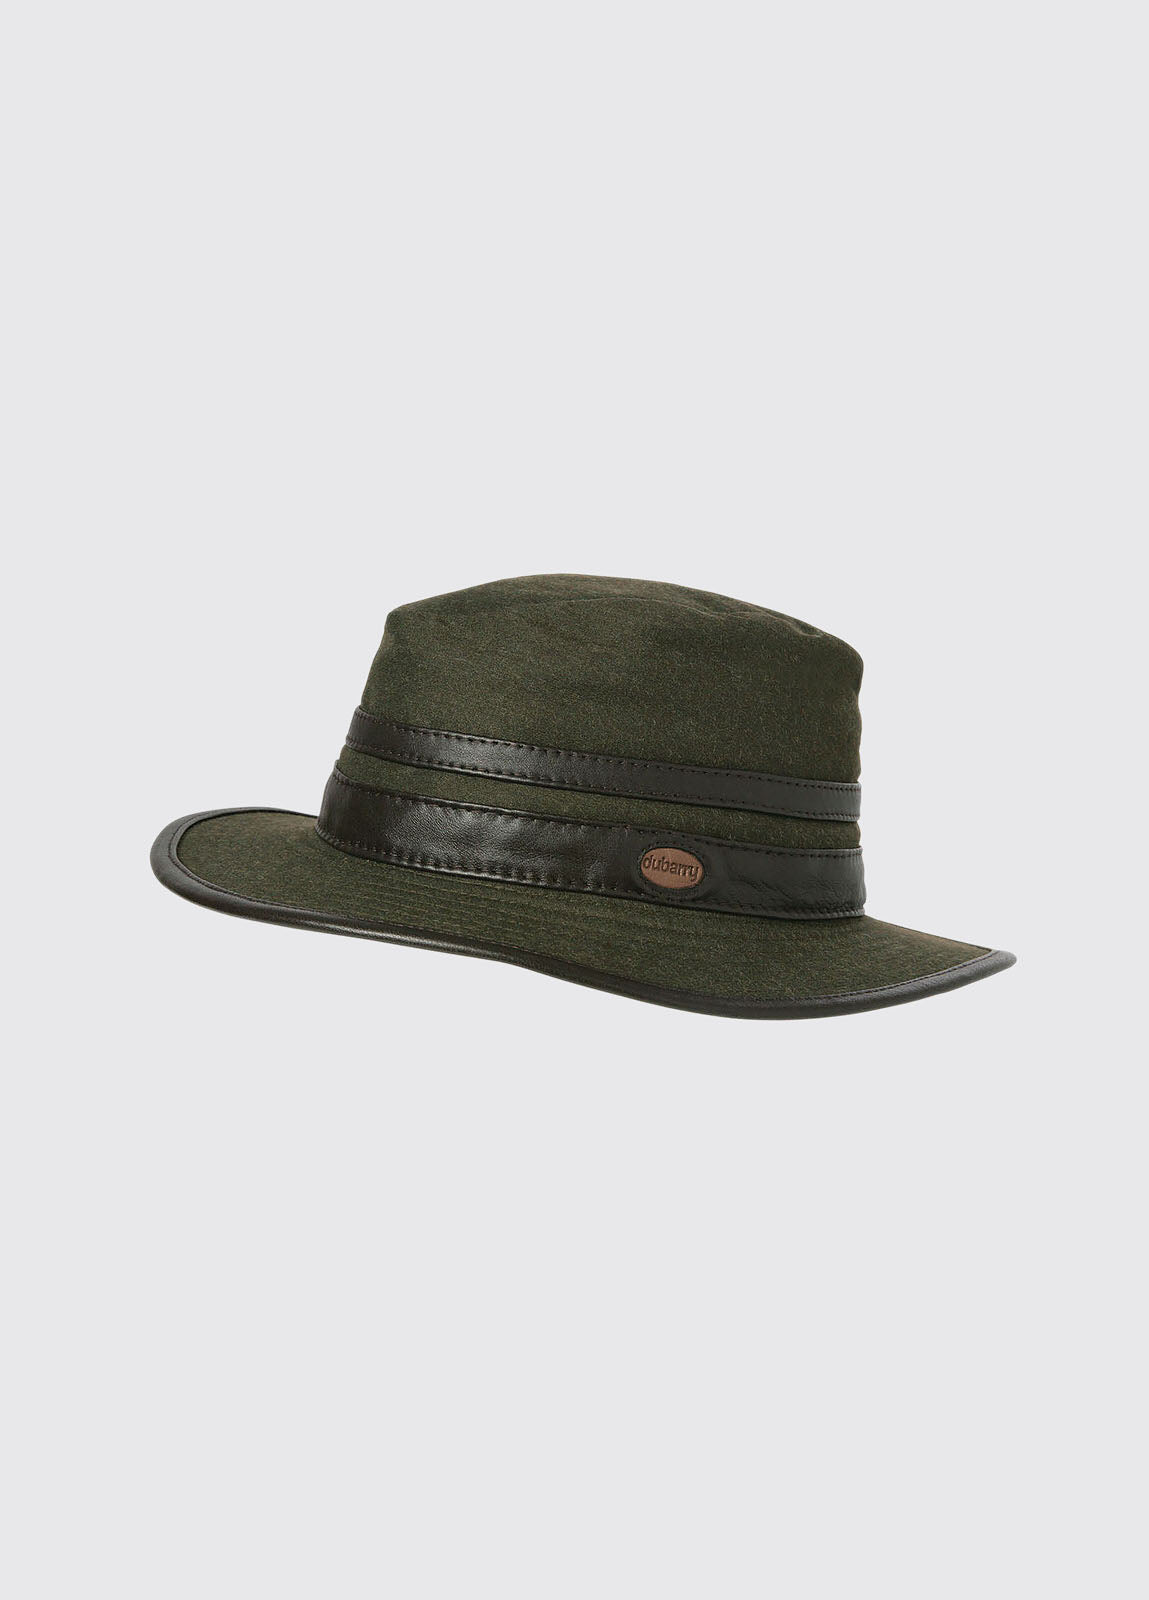 Dubarry Butler Hat in Olive